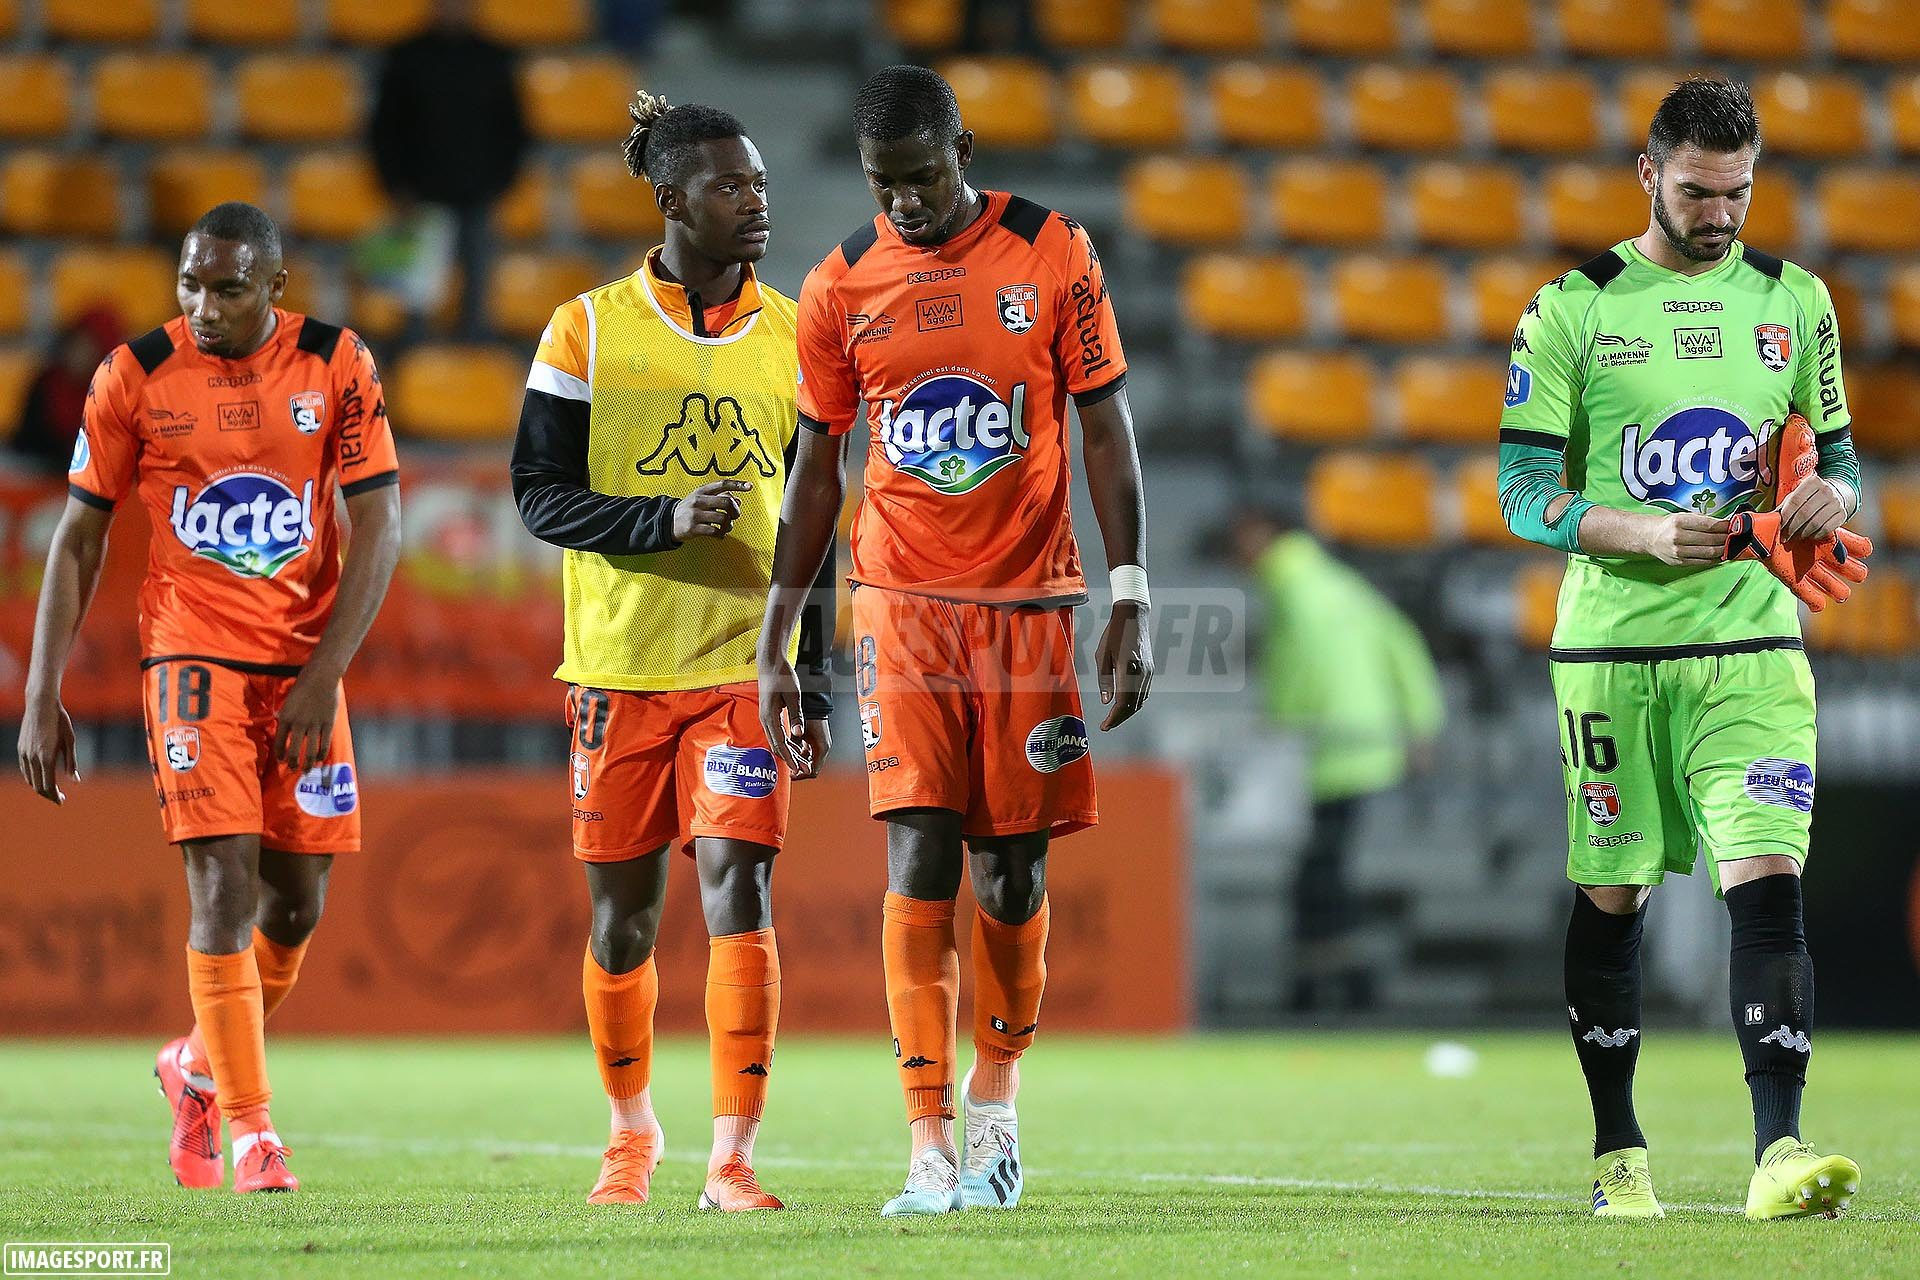 national-stade-lavallois-fbbp01-2019-2020_30